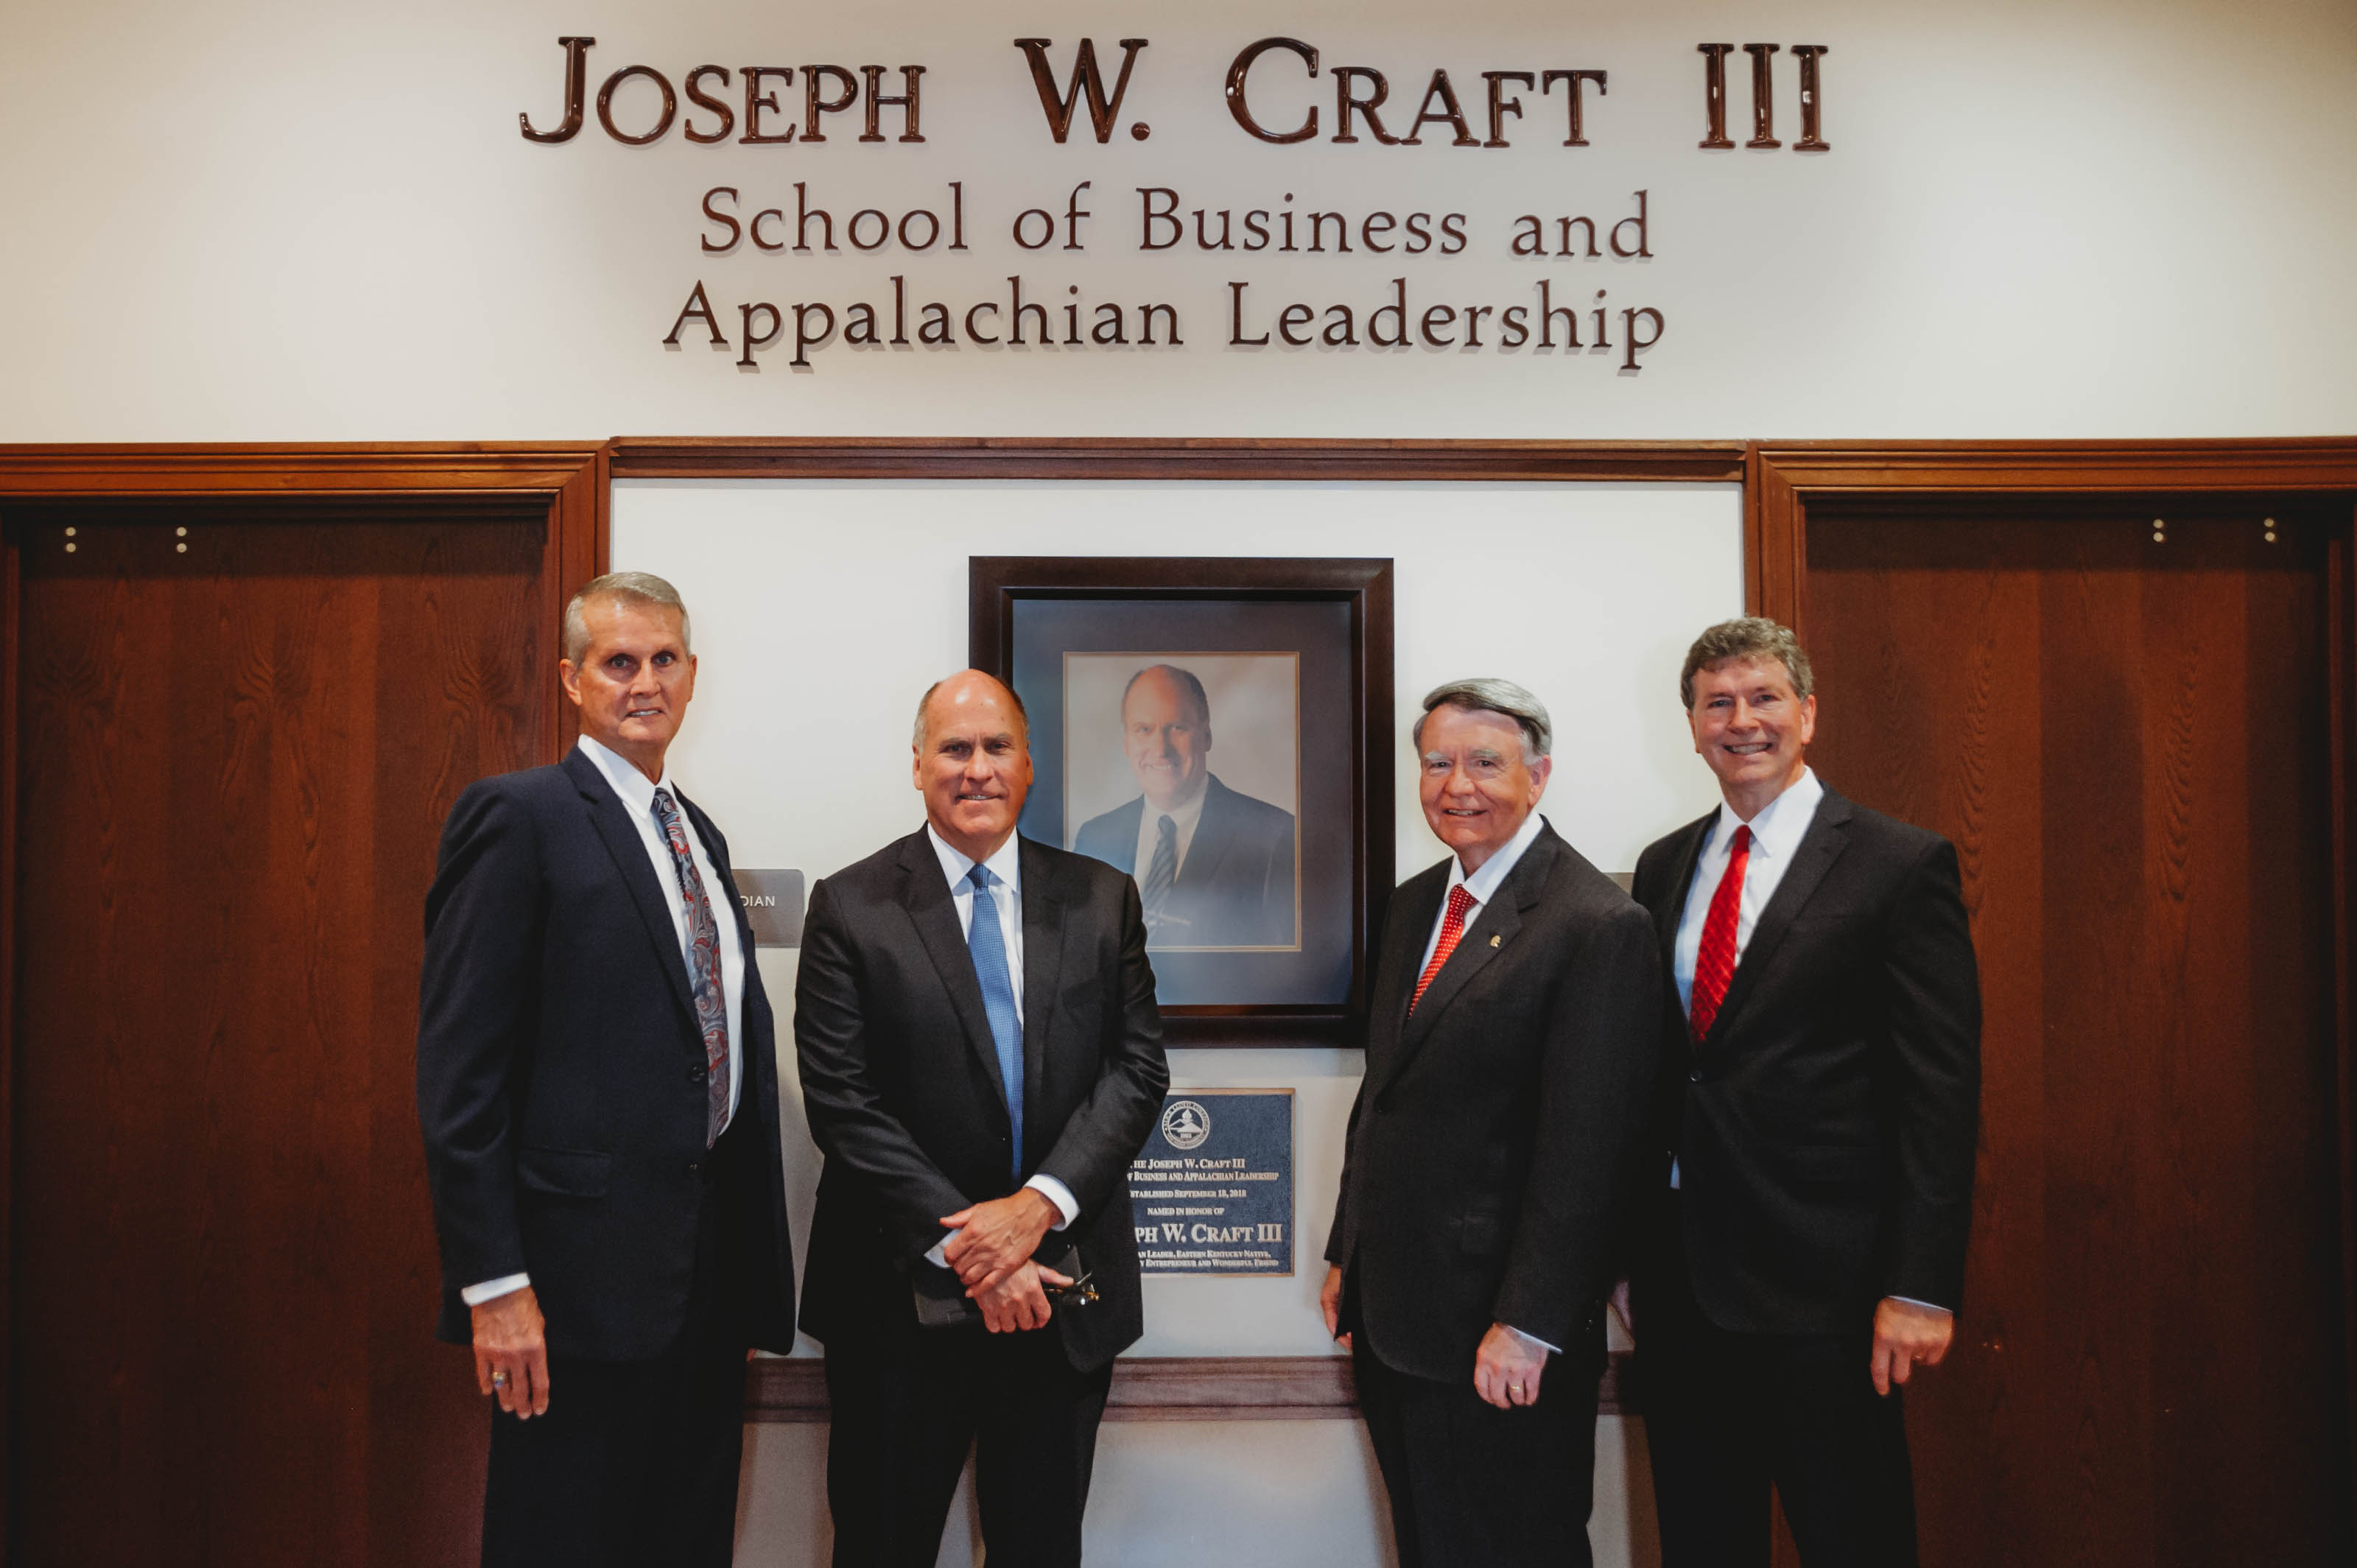 President Joe Stepp, Mr. Joe Craft, Mr. Robert M. Duncan, and Dr. Jim Stepp